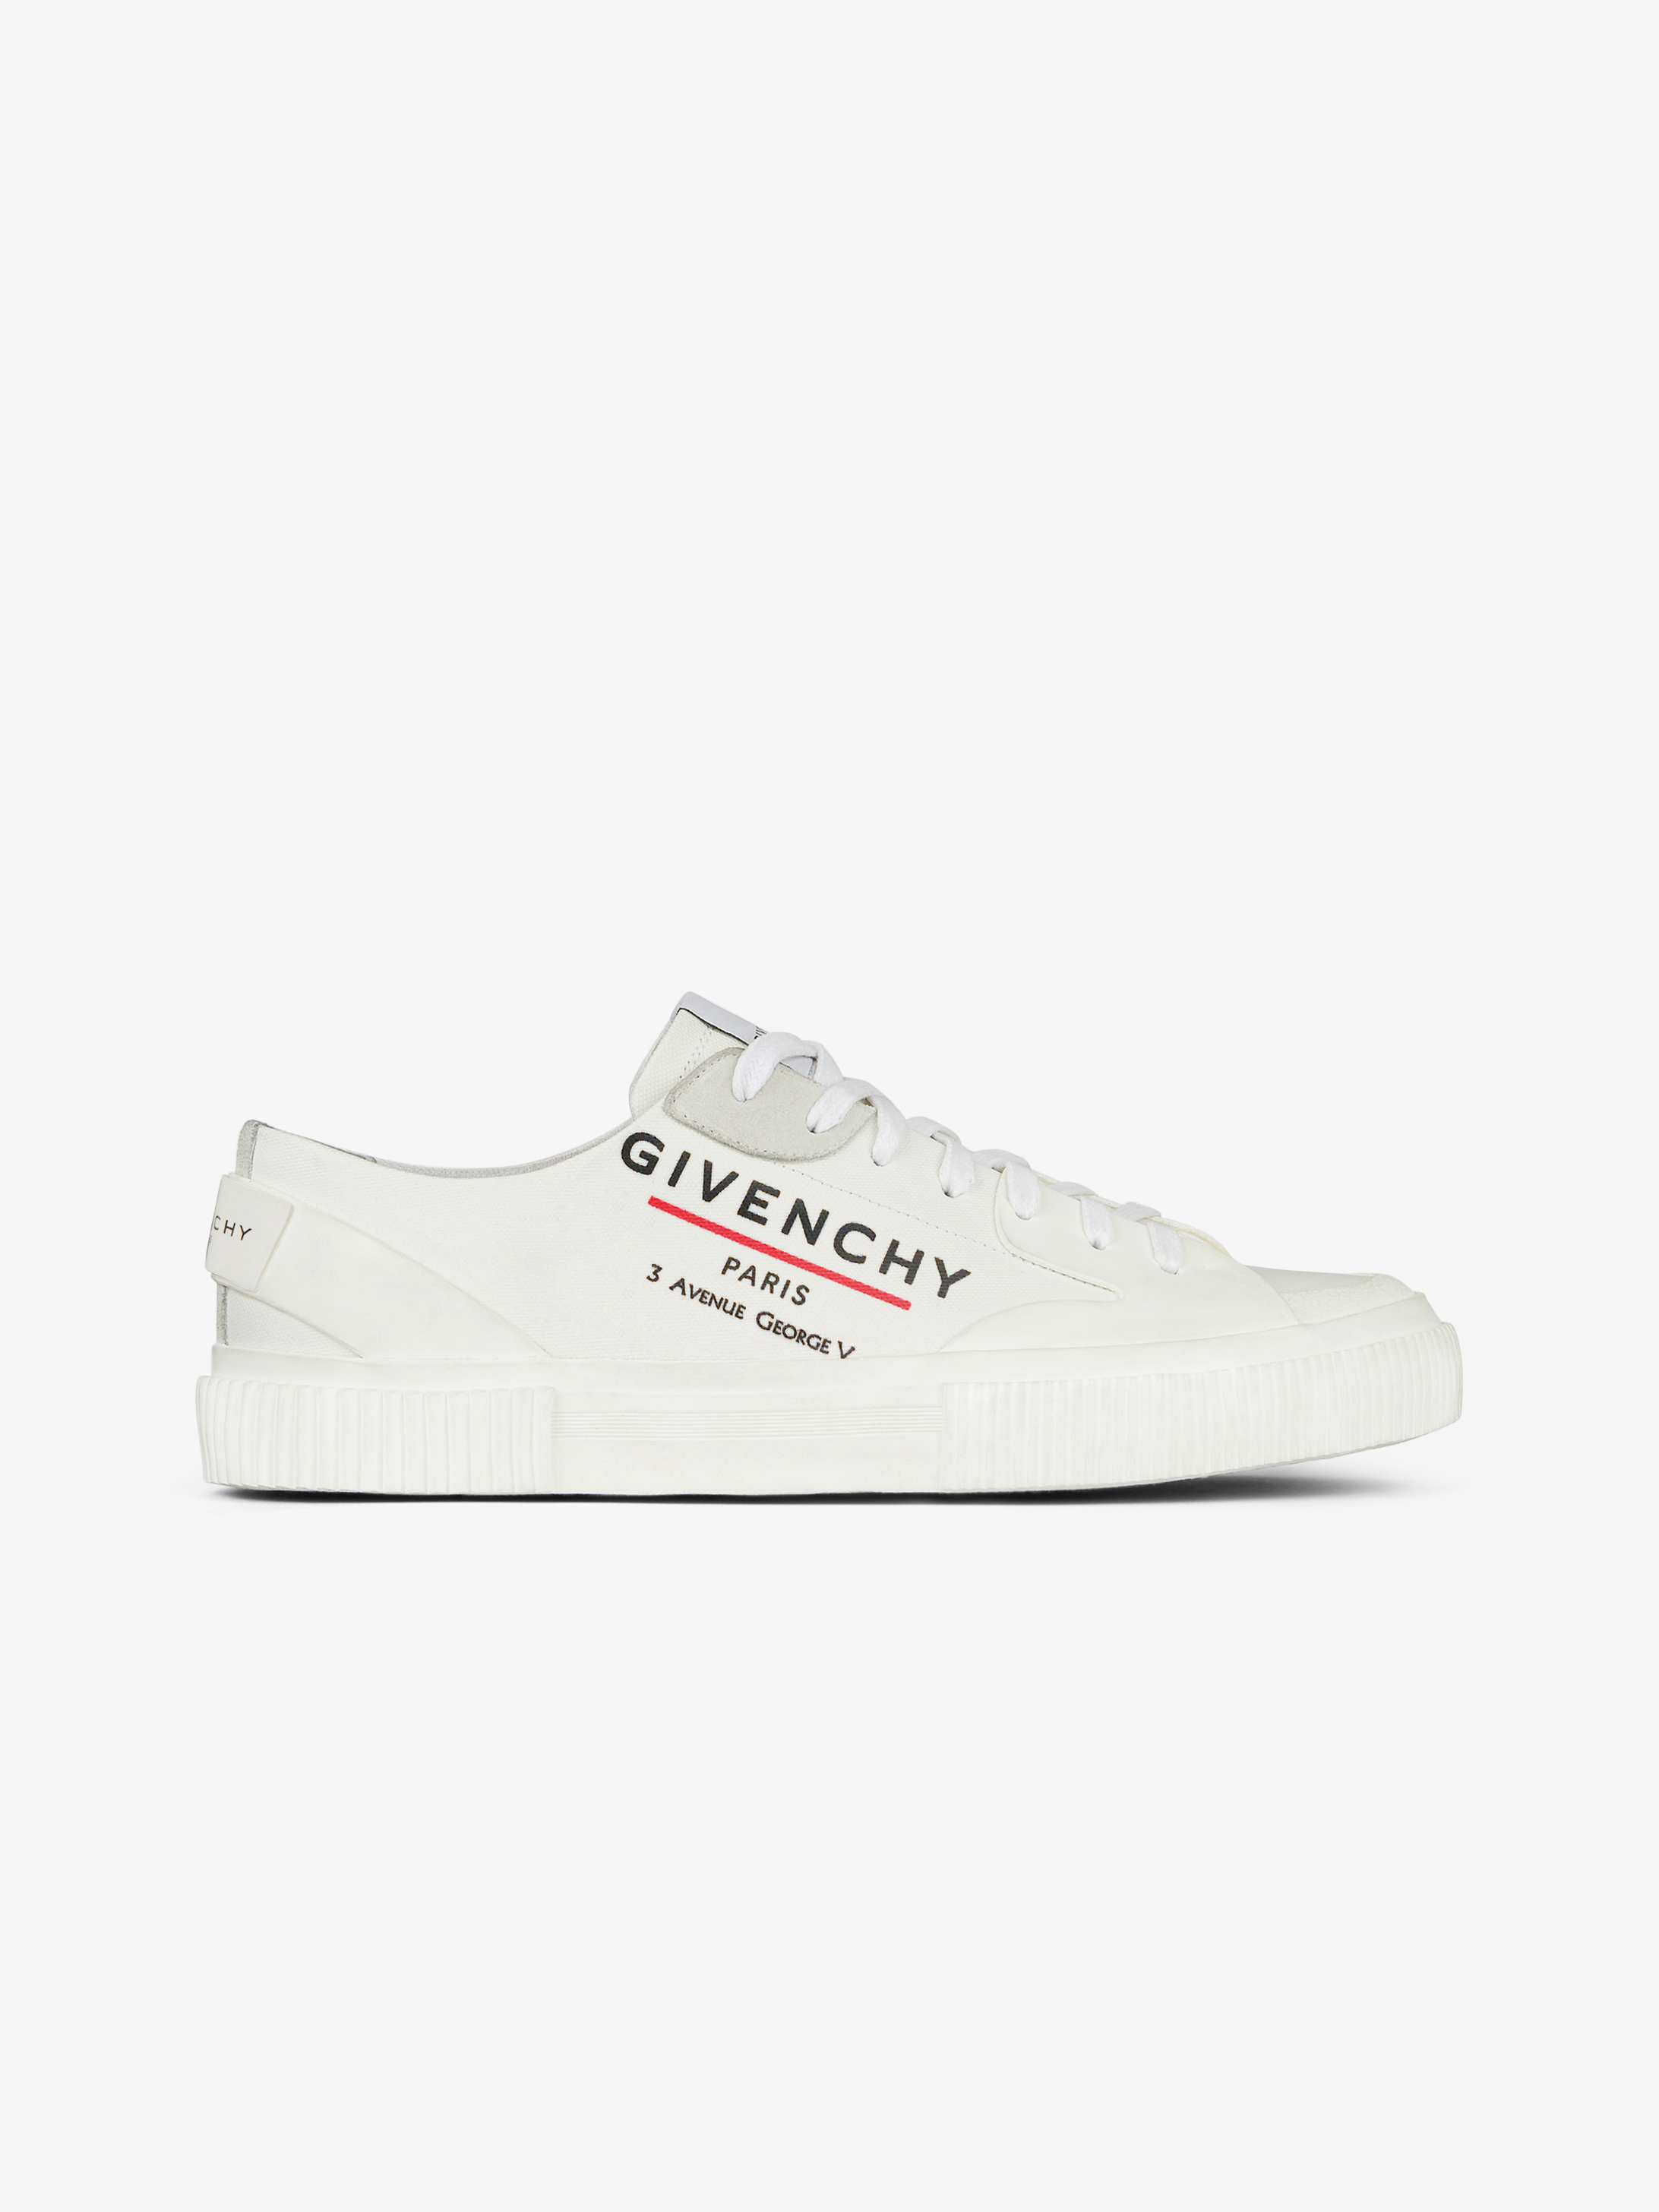 Tennis Light low sneakers in GIVENCHY LABEL canvas